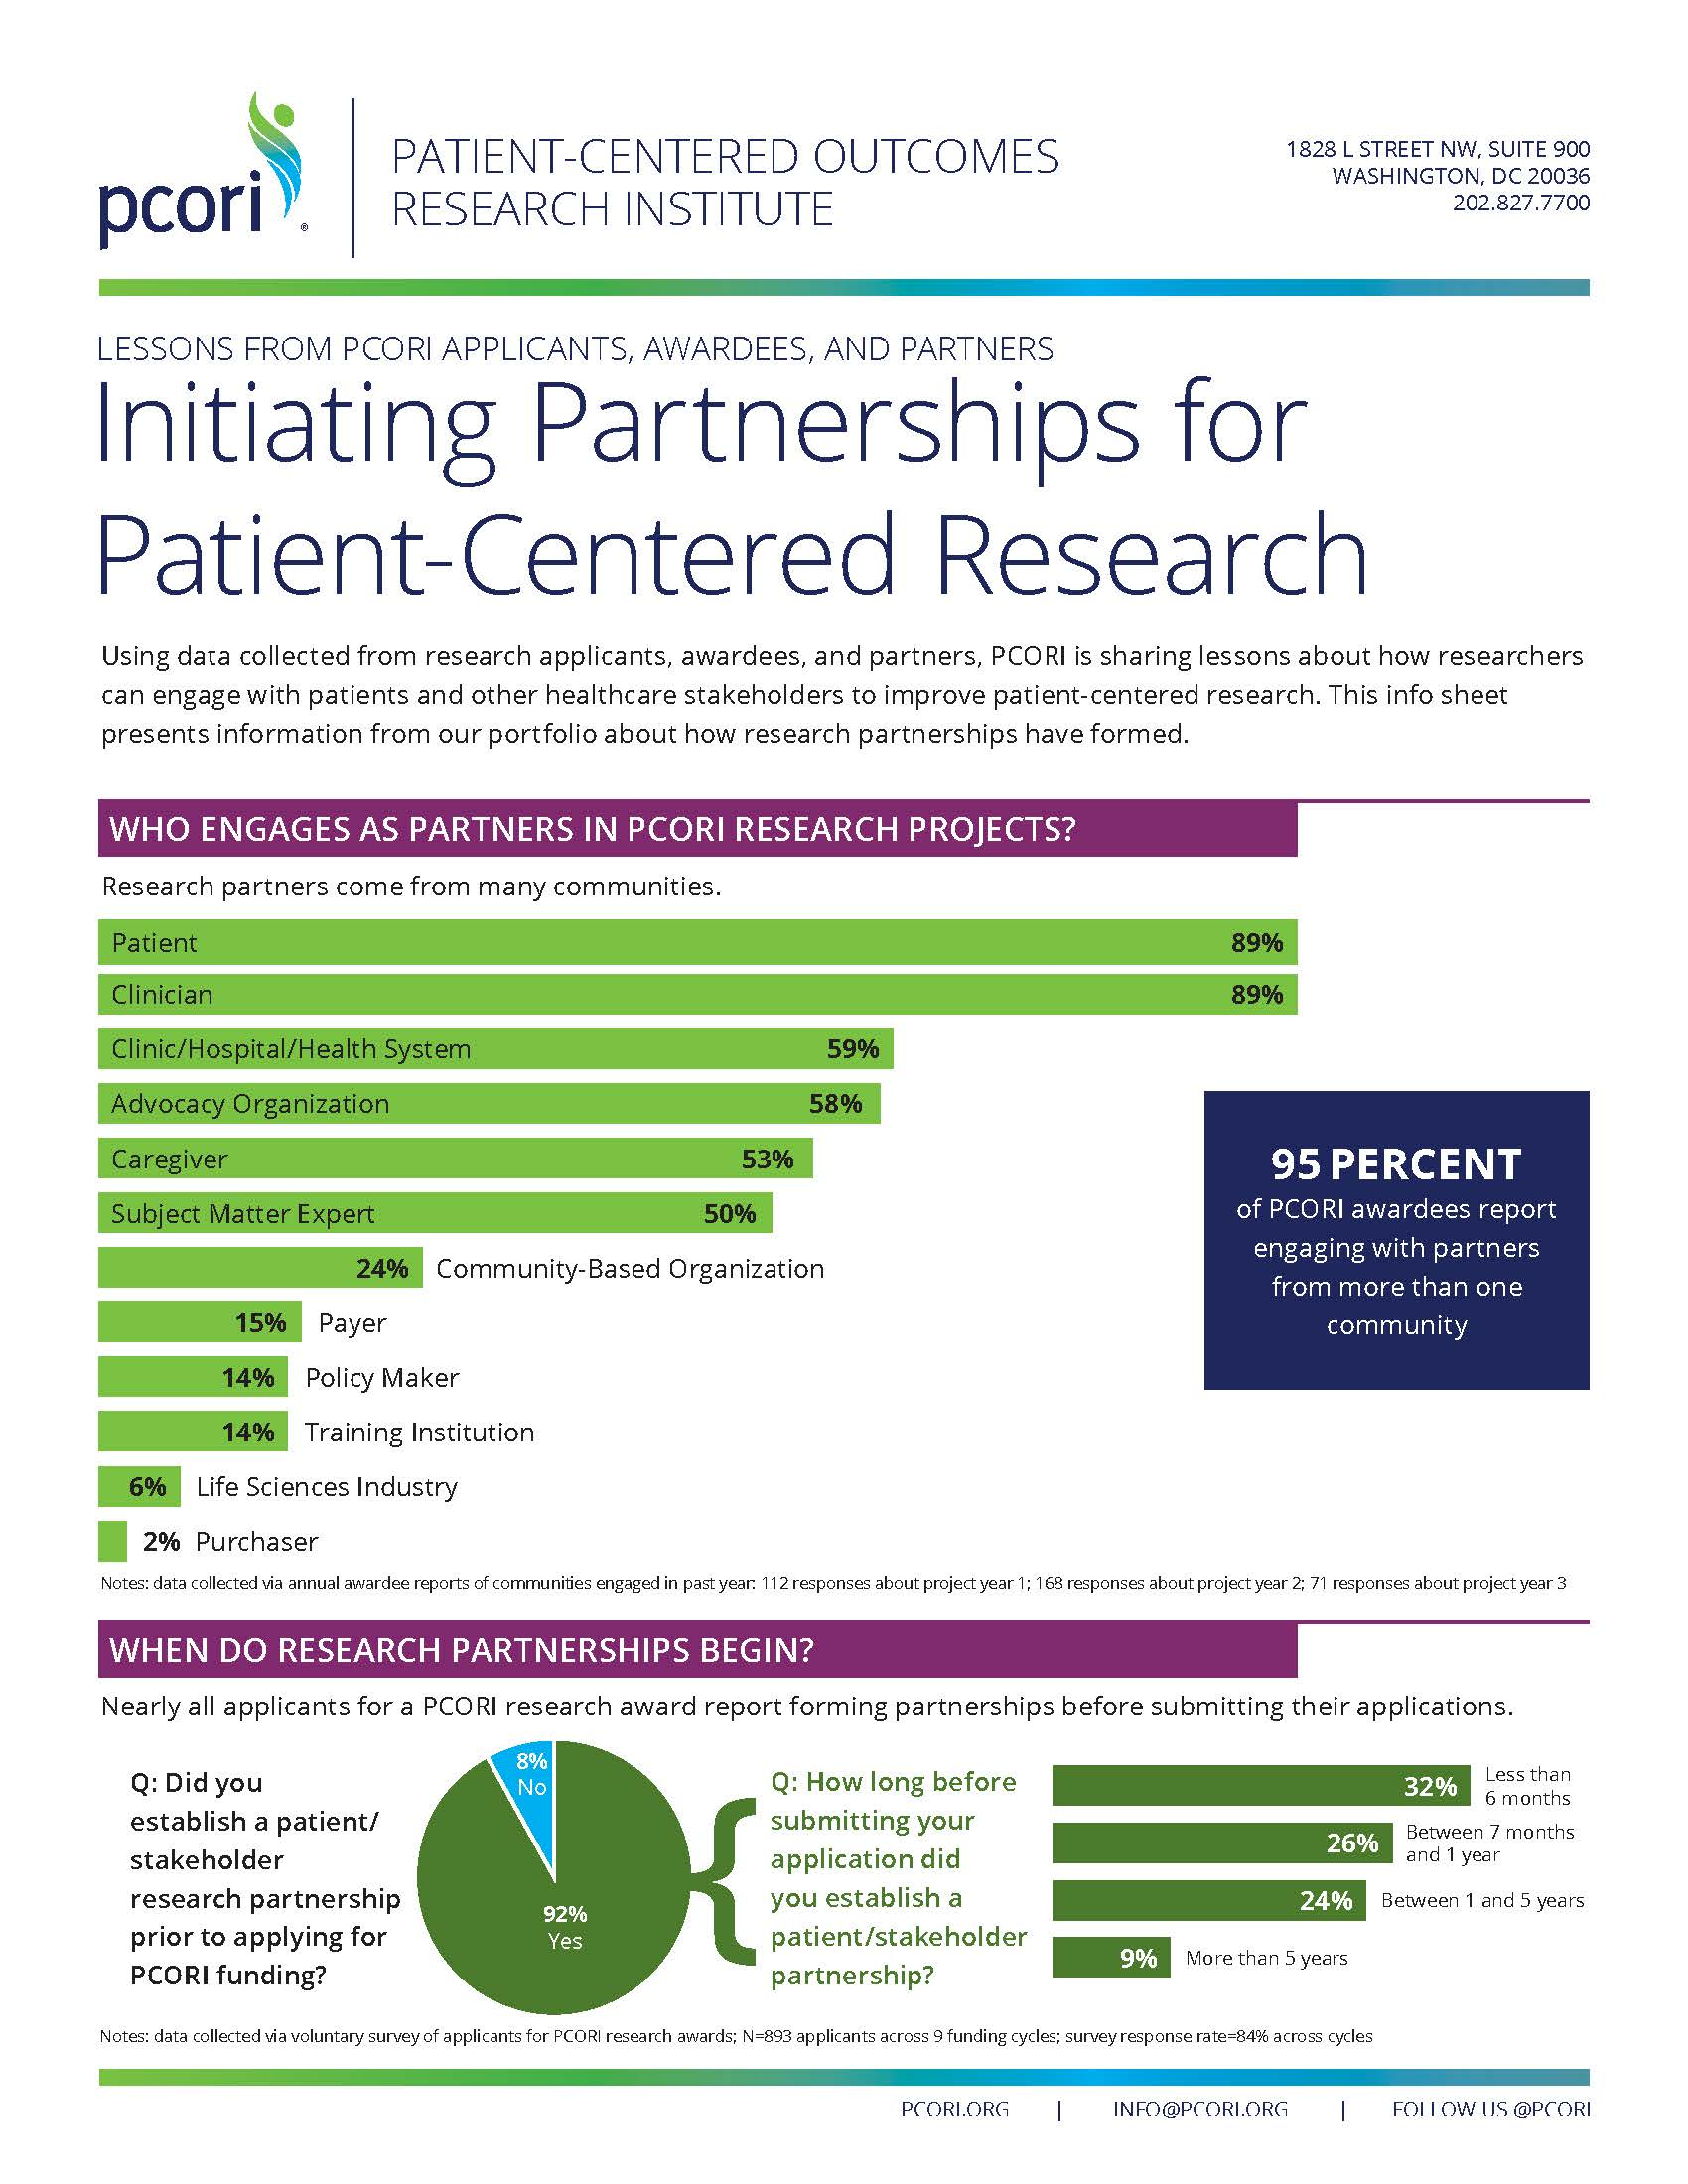 Screenshot of the Initiating Partnerships for Patient-Centered Research handout